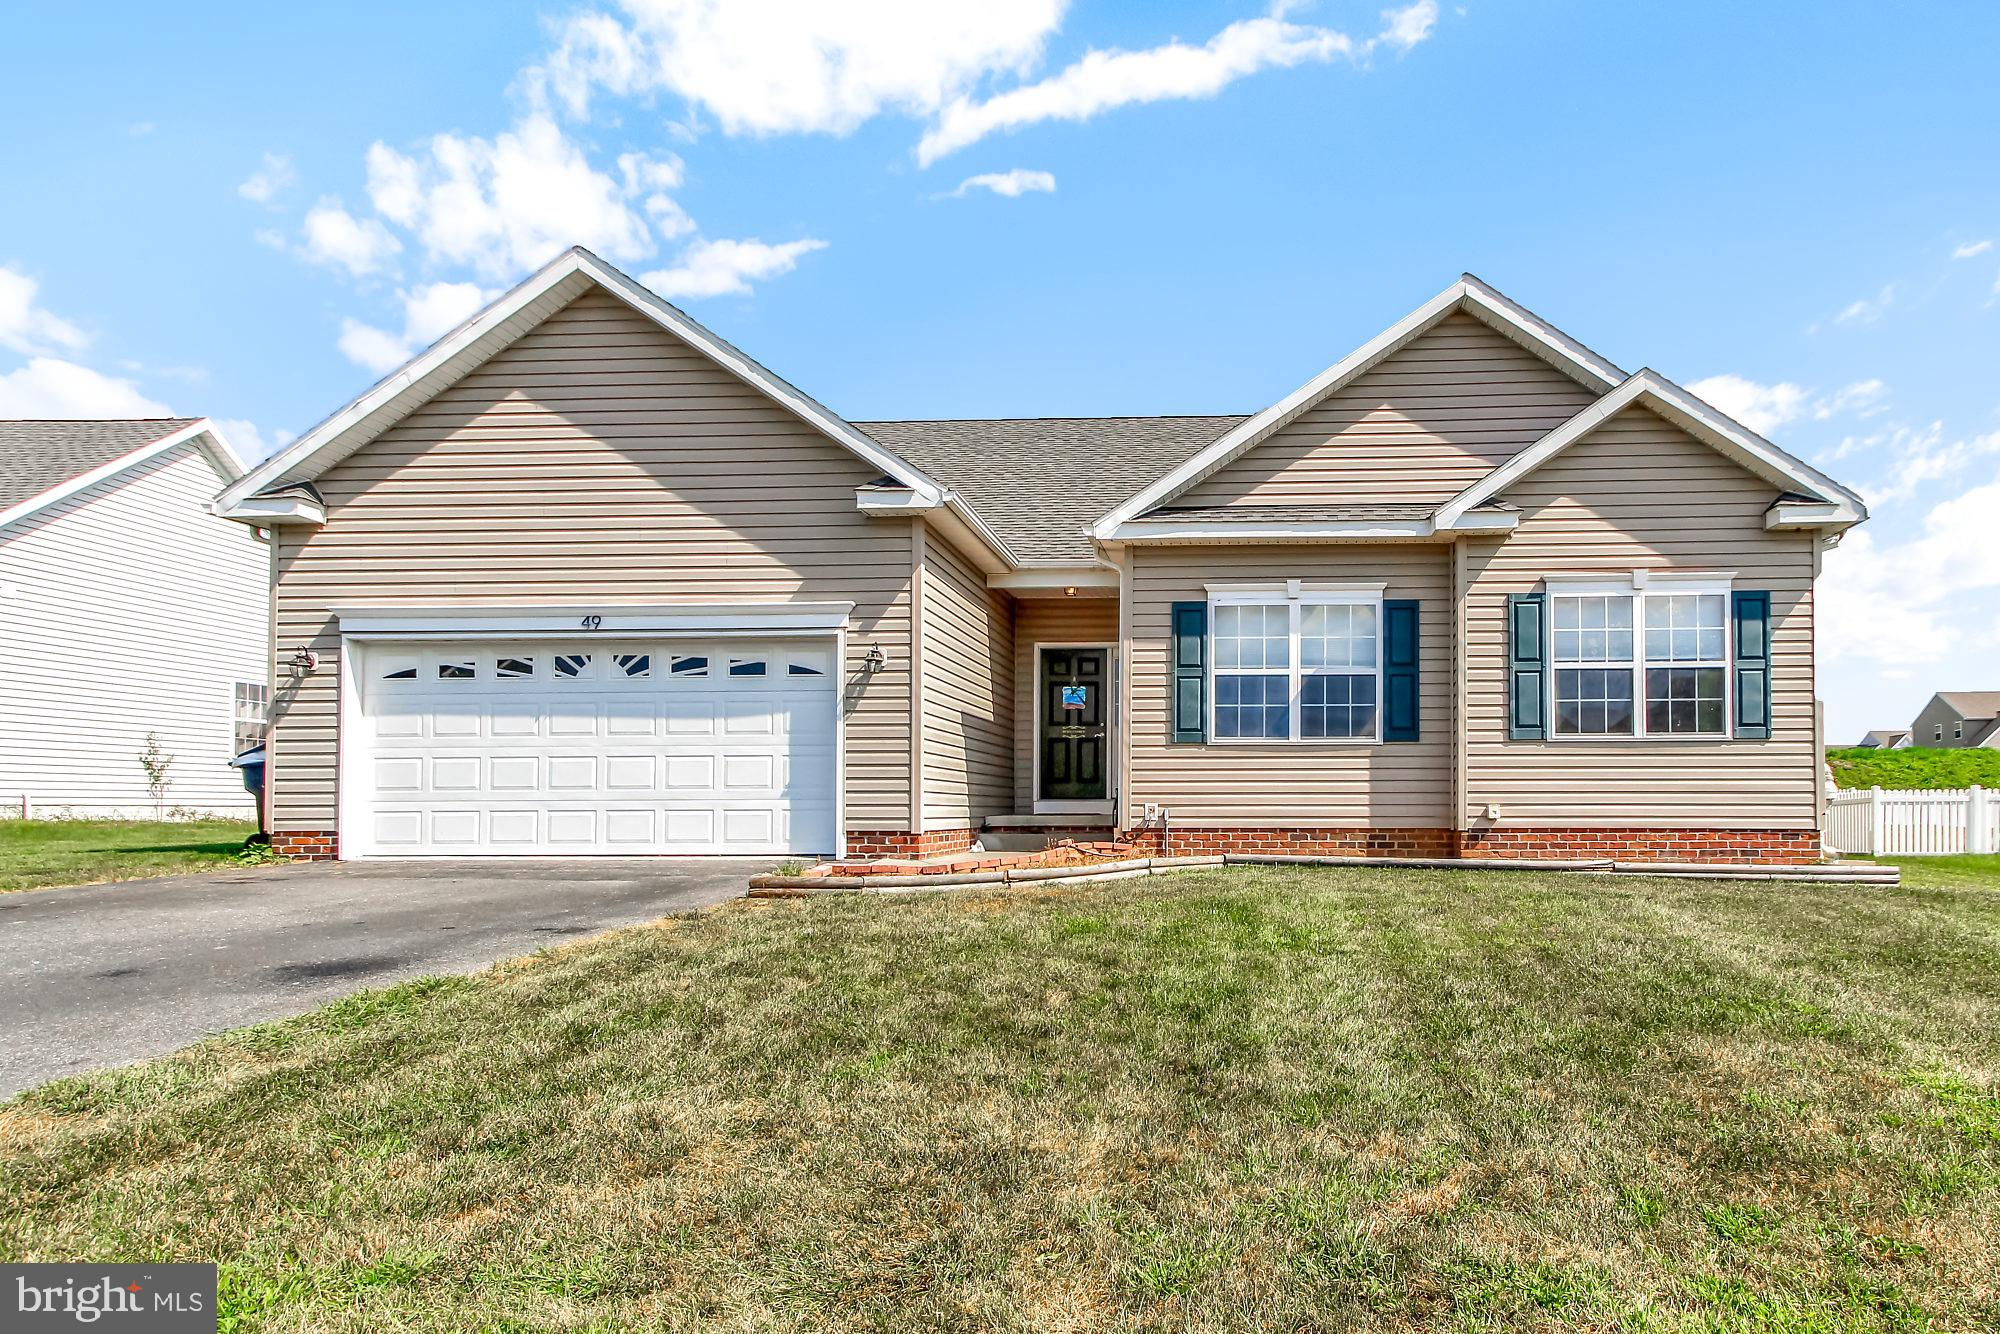 49 W IMPERIAL DRIVE, ASPERS, PA 17304